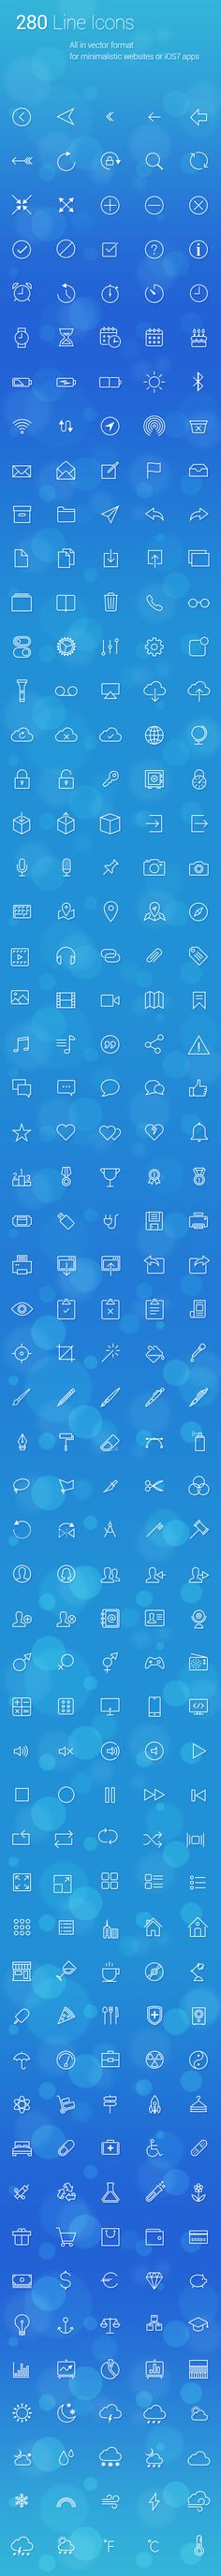 280 uniquely designed vector line icons  https://gumroad.com/l/orbG